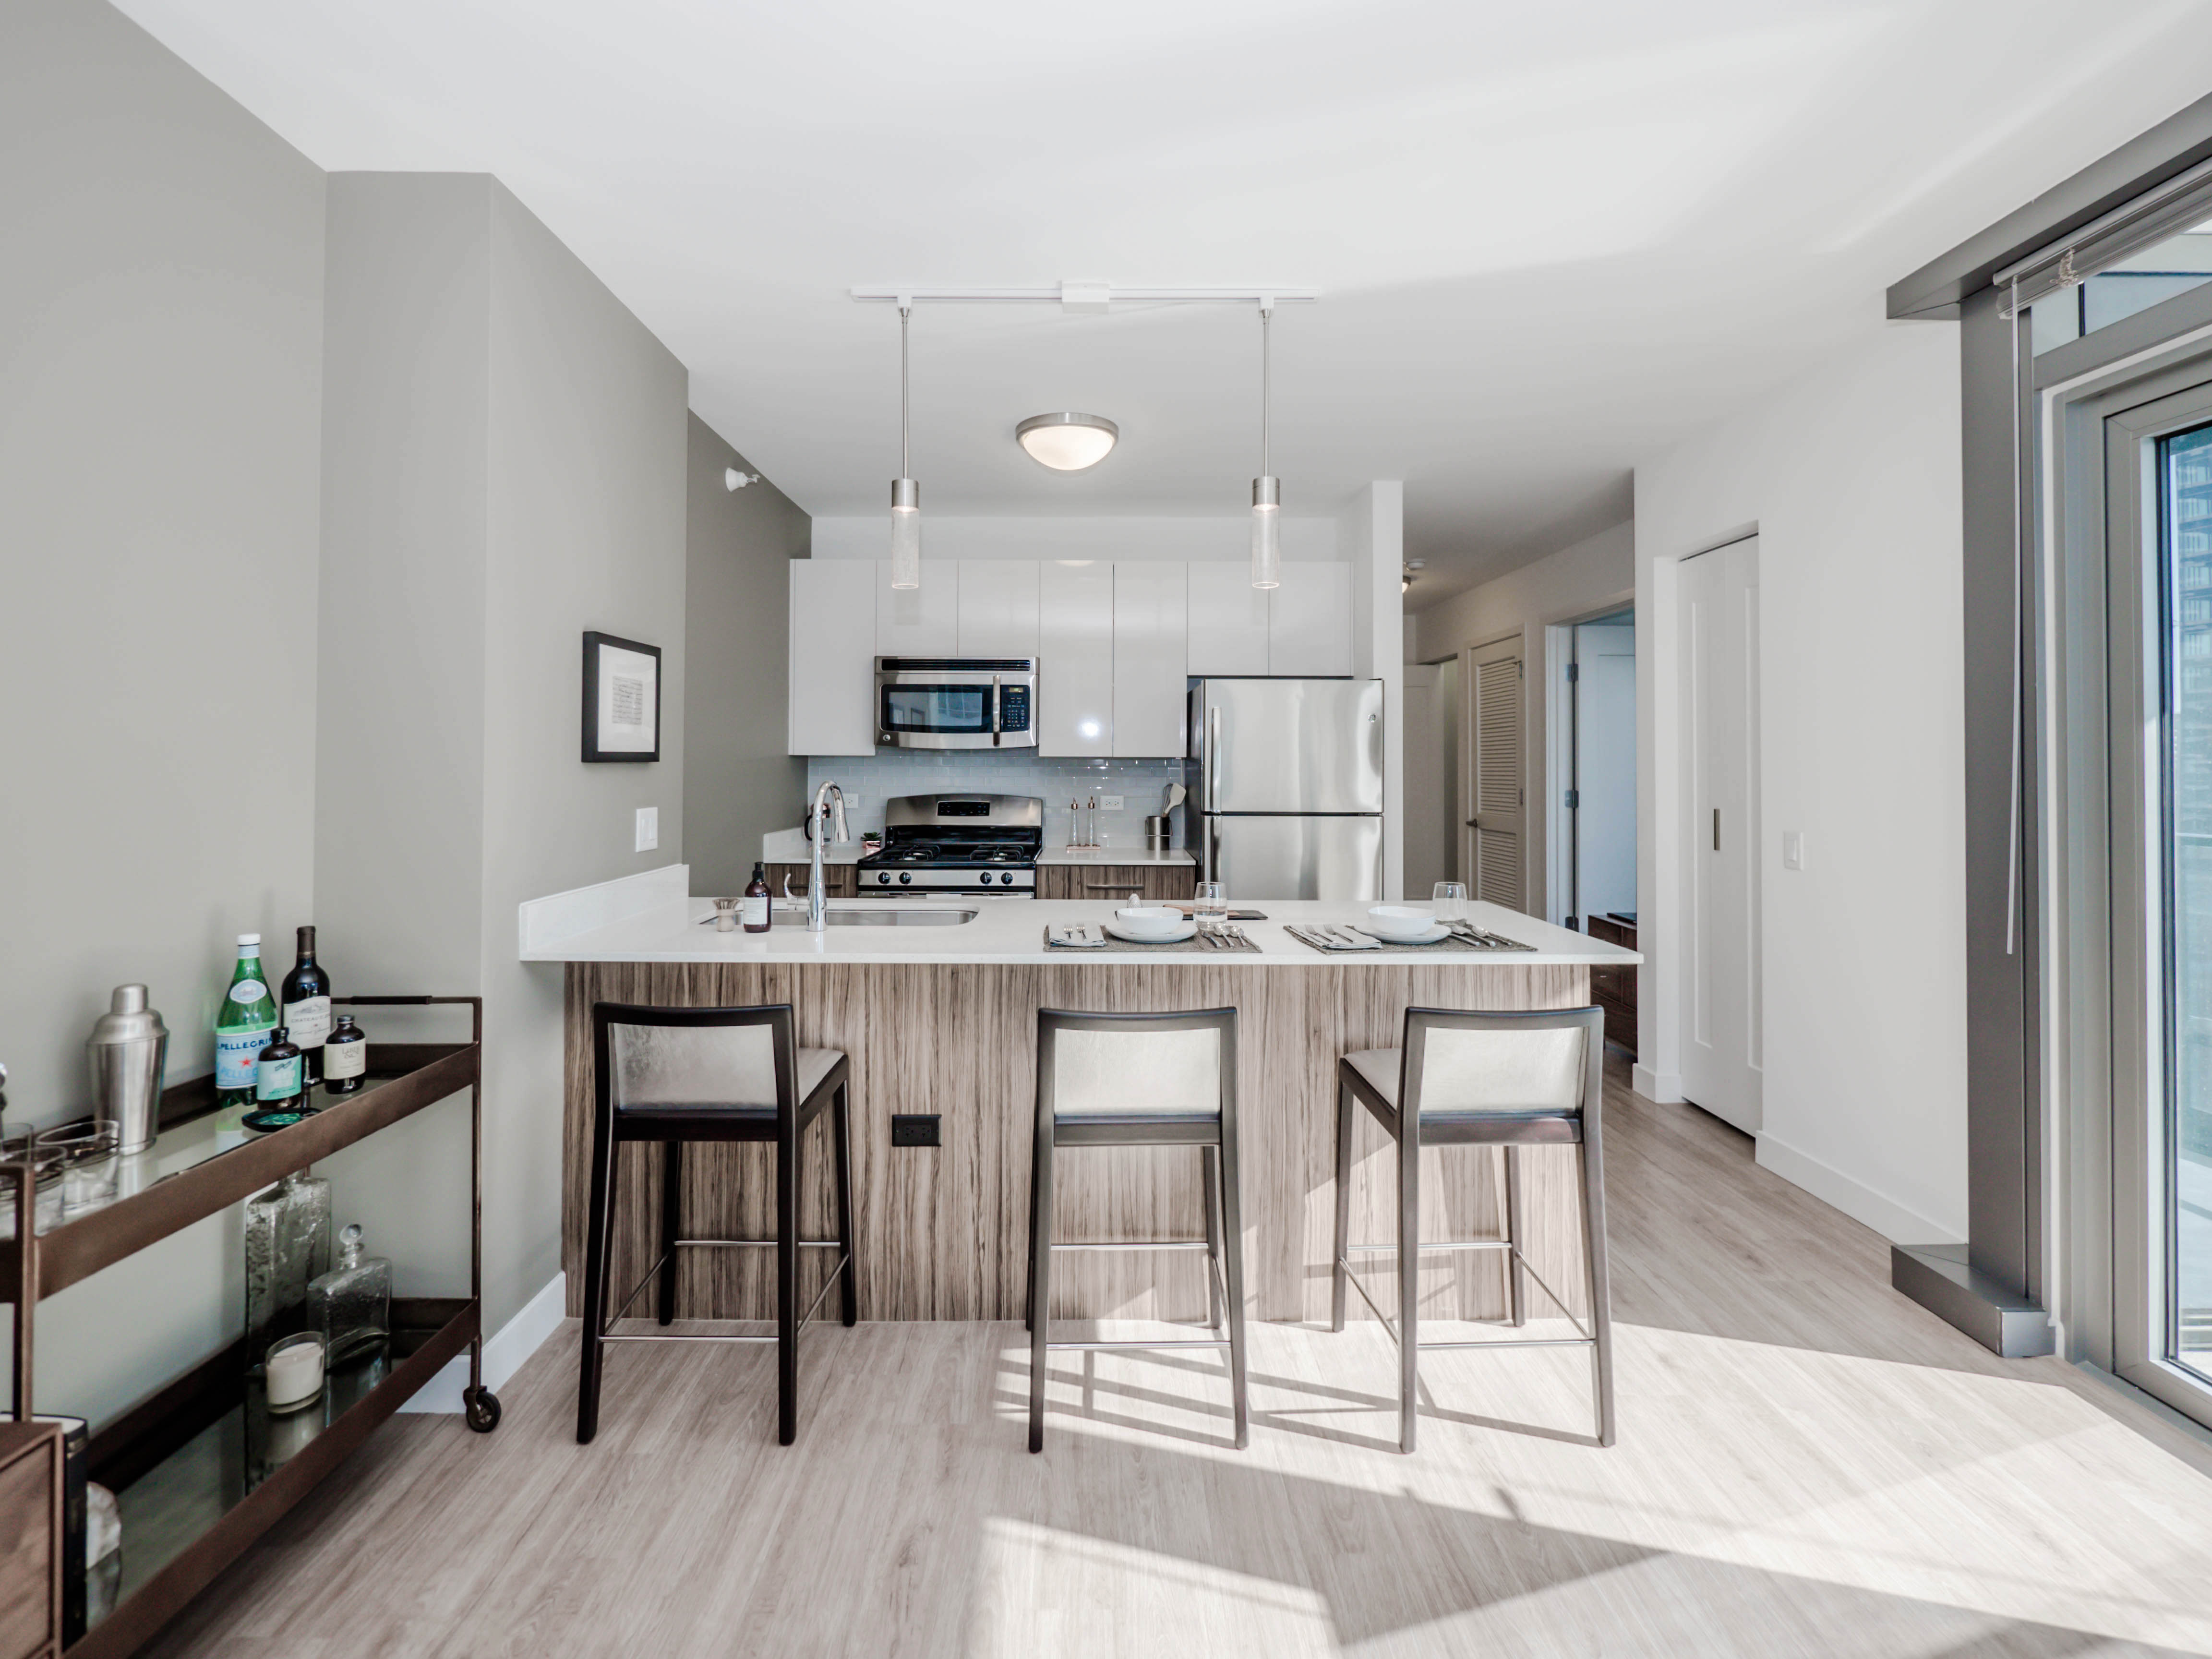 Cheap One Bedroom Apartments In Houston Tx. Cheap One Bedroom Apartments In Chicago   Rapnacional info